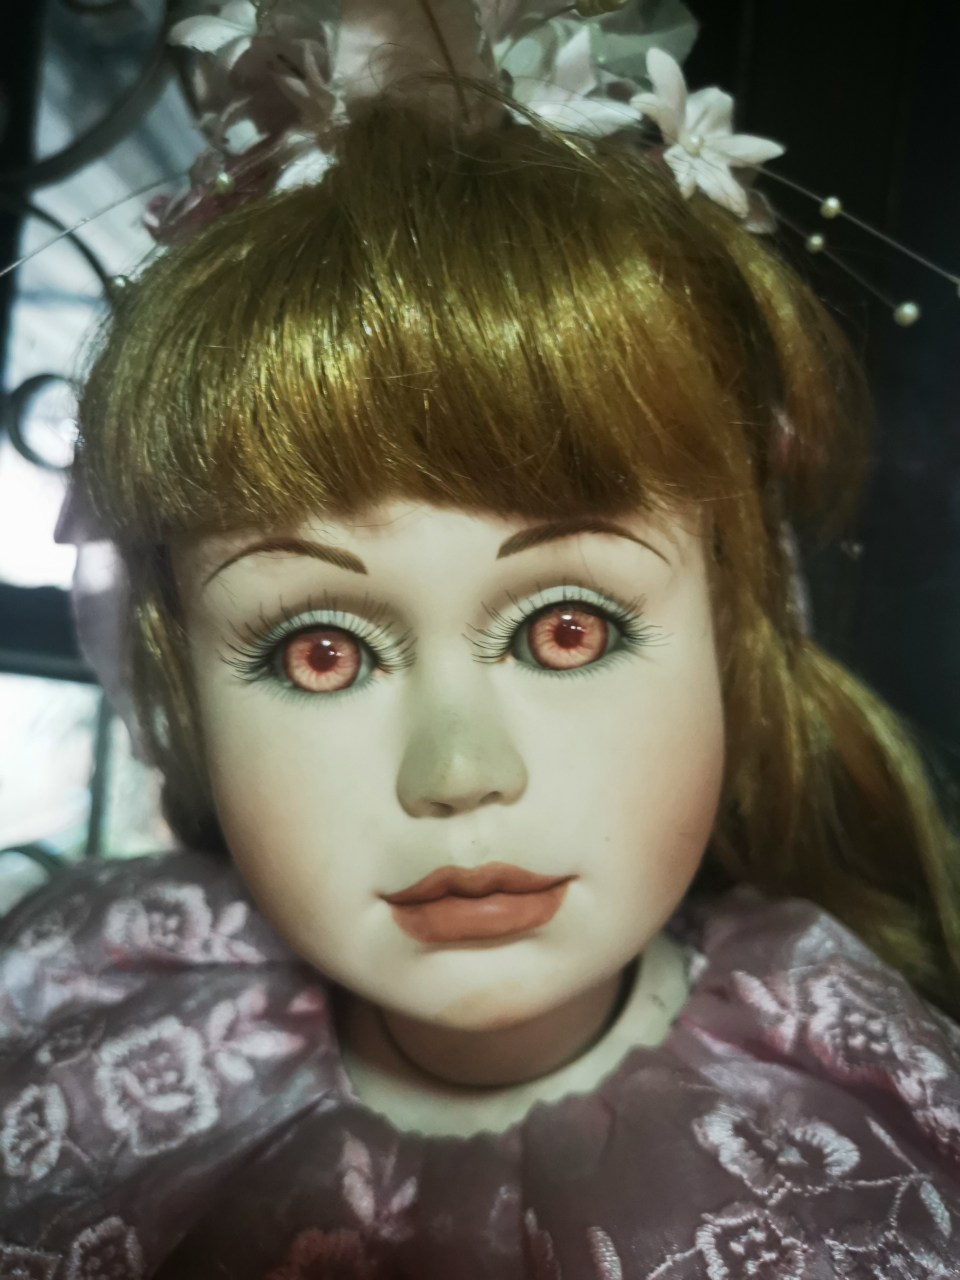 A doll in the Chiang Mai doll museum.